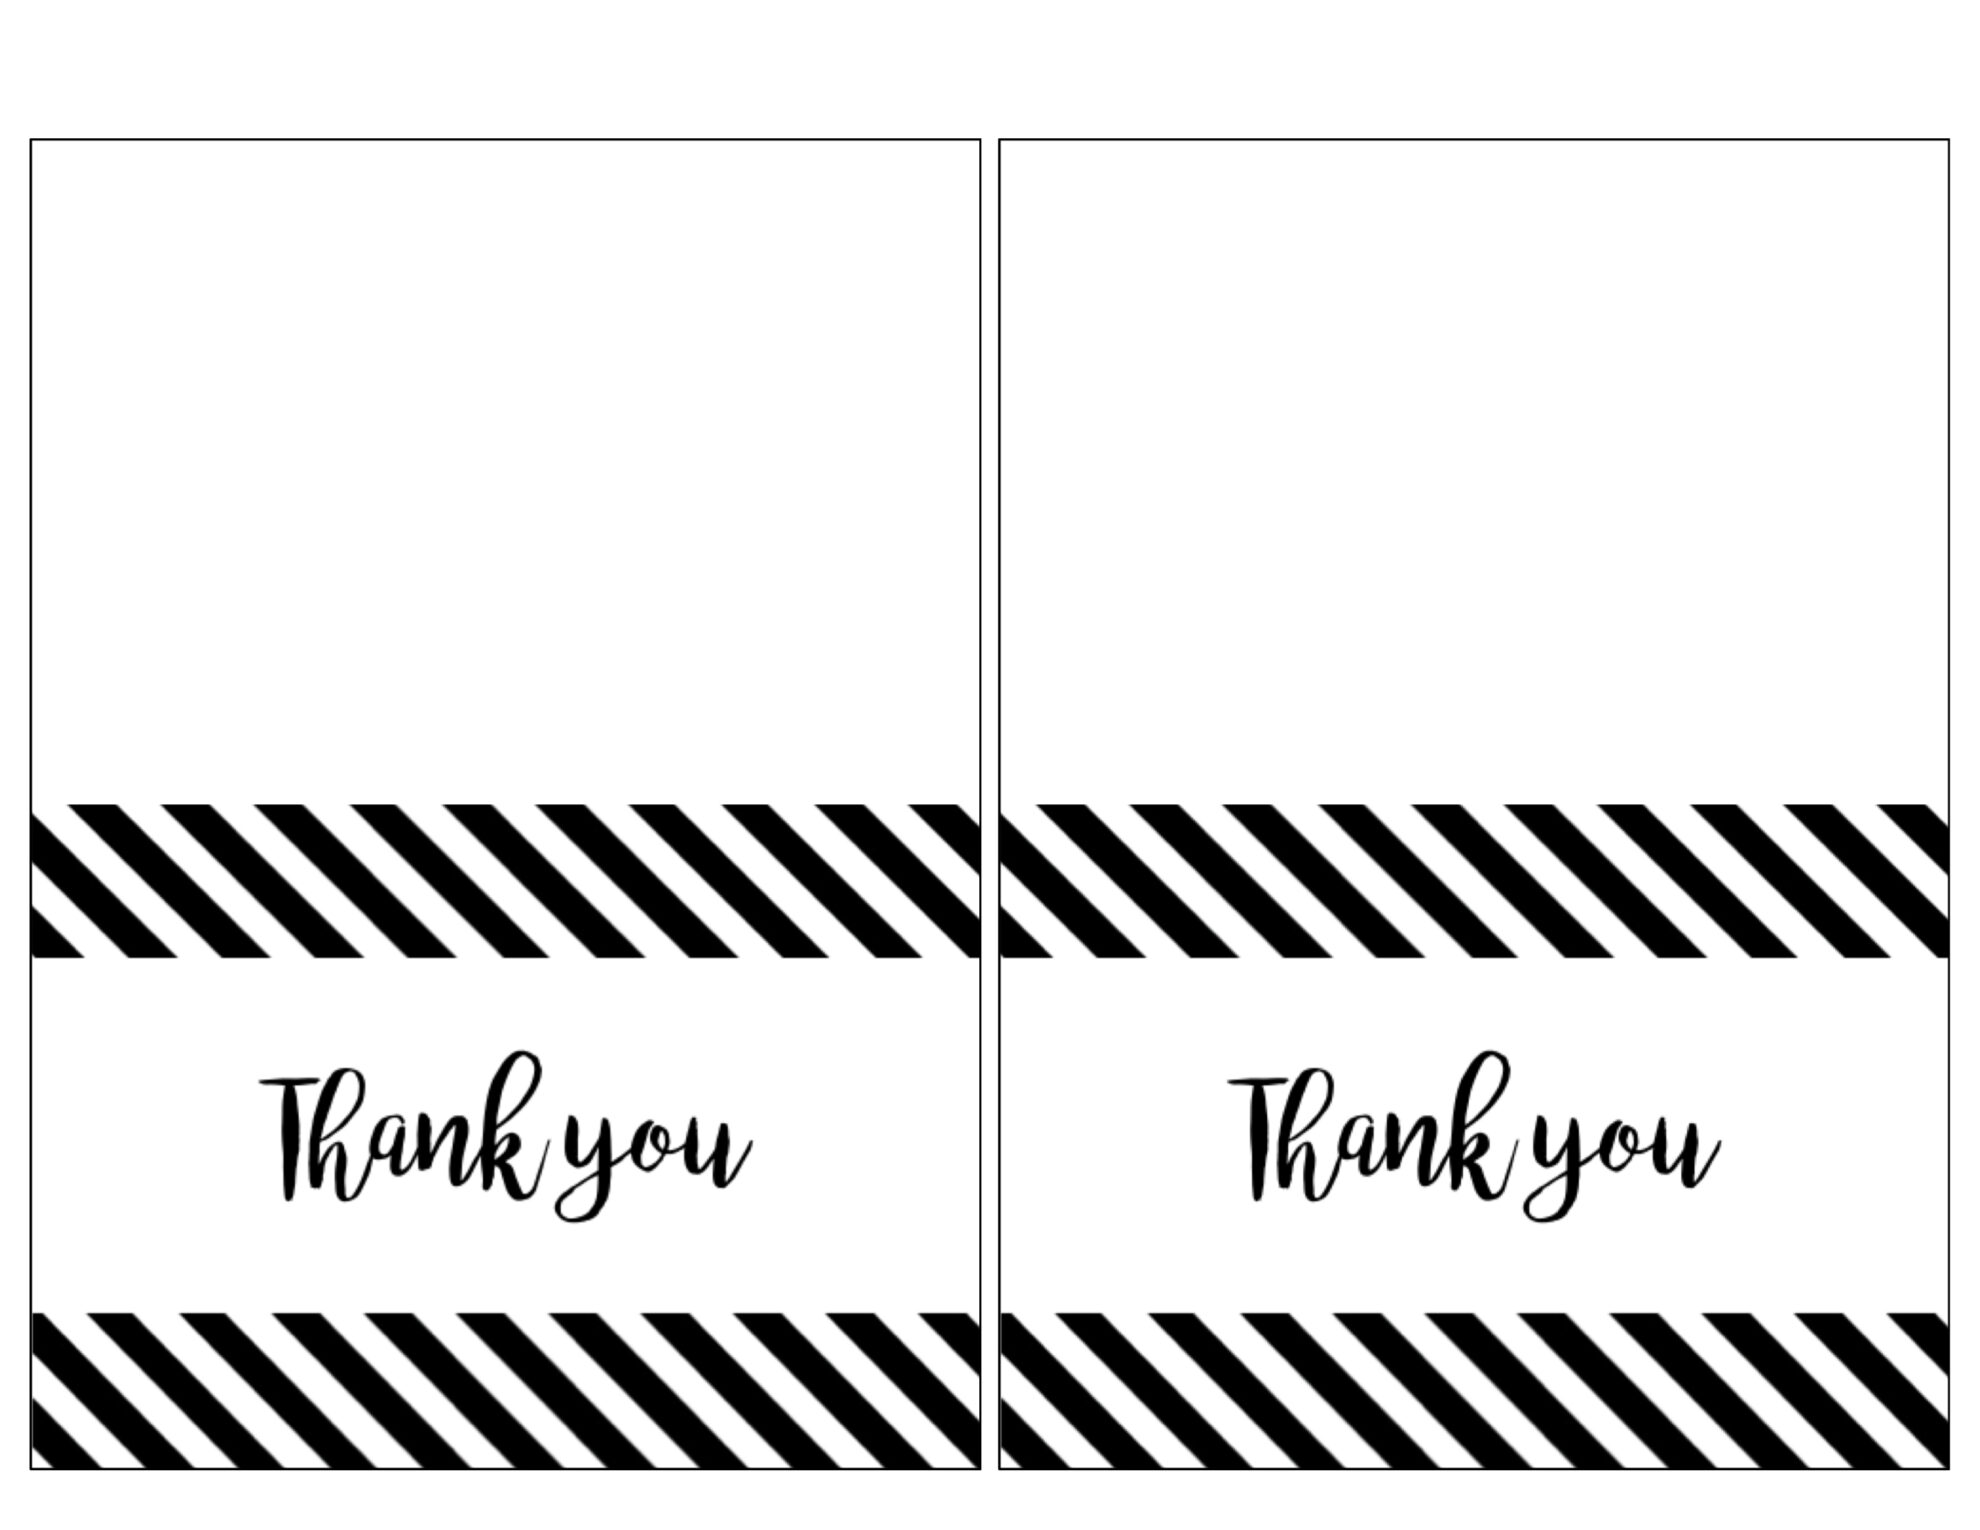 Free Thank You Cards Print {Free Printable Black and White